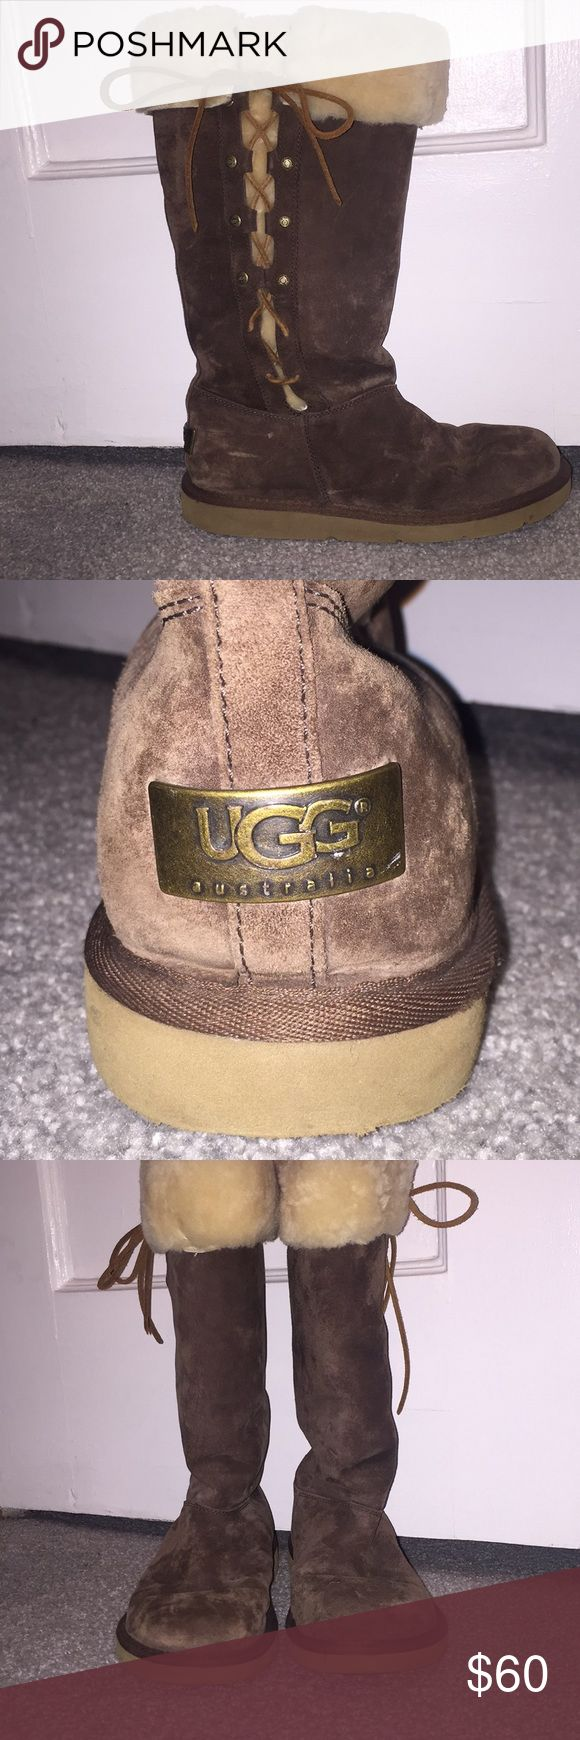 Barely worn Ugg lace up boots ***price drop*** Perfect condition, barely worn, chocolate lace up Uggs!  Offers welcome!!! UGG Shoes Winter & Rain Boots